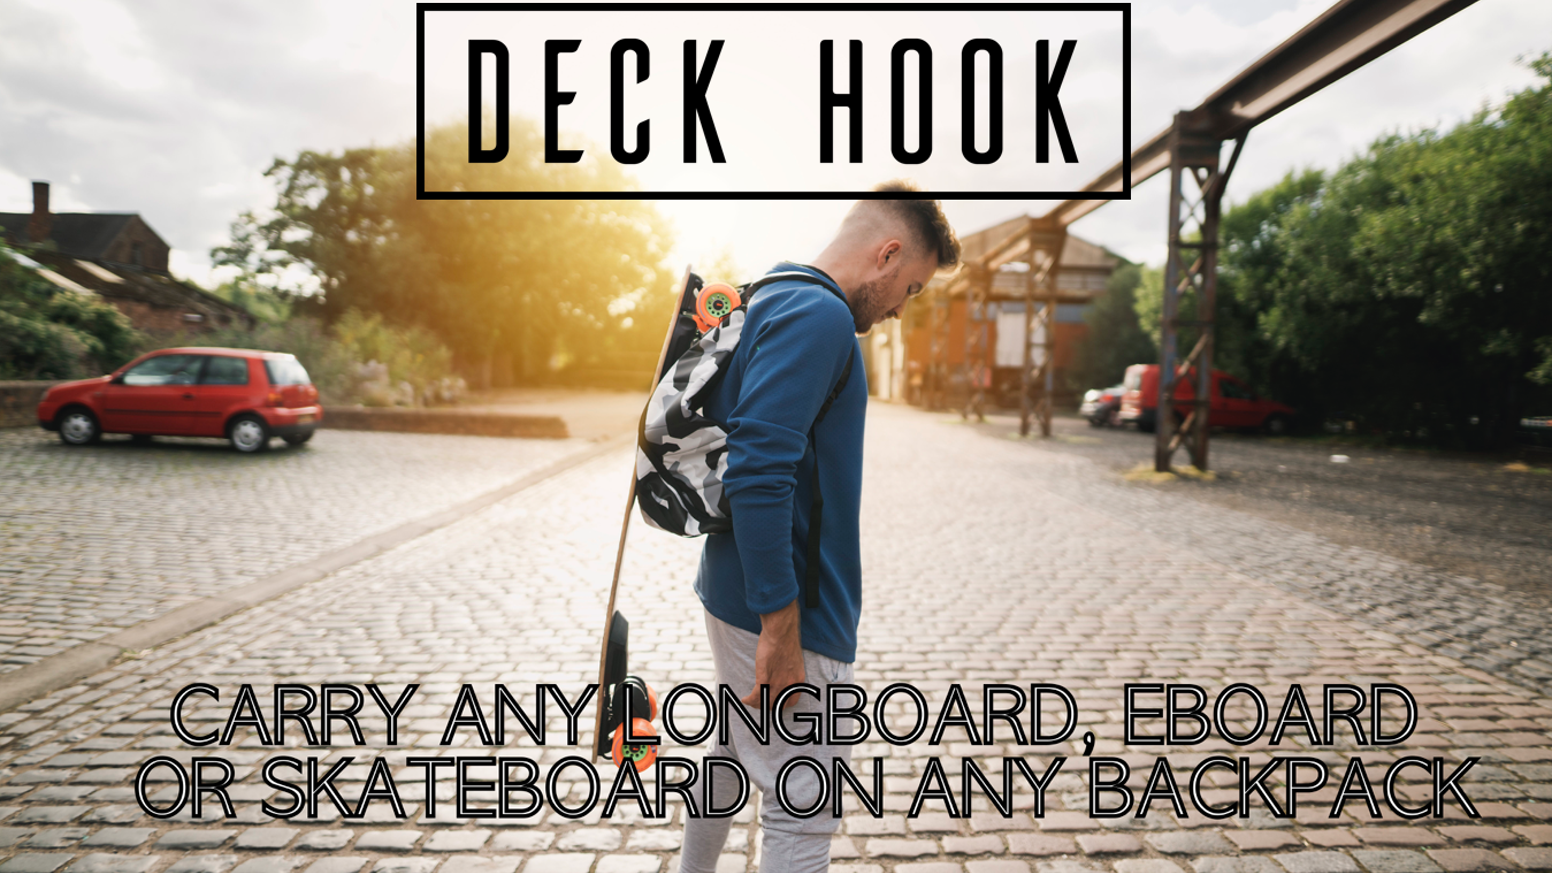 The Patent Pending Deck Hook clips on to any 2 strap backpack and can carry any longboard, skateboard or eboard.